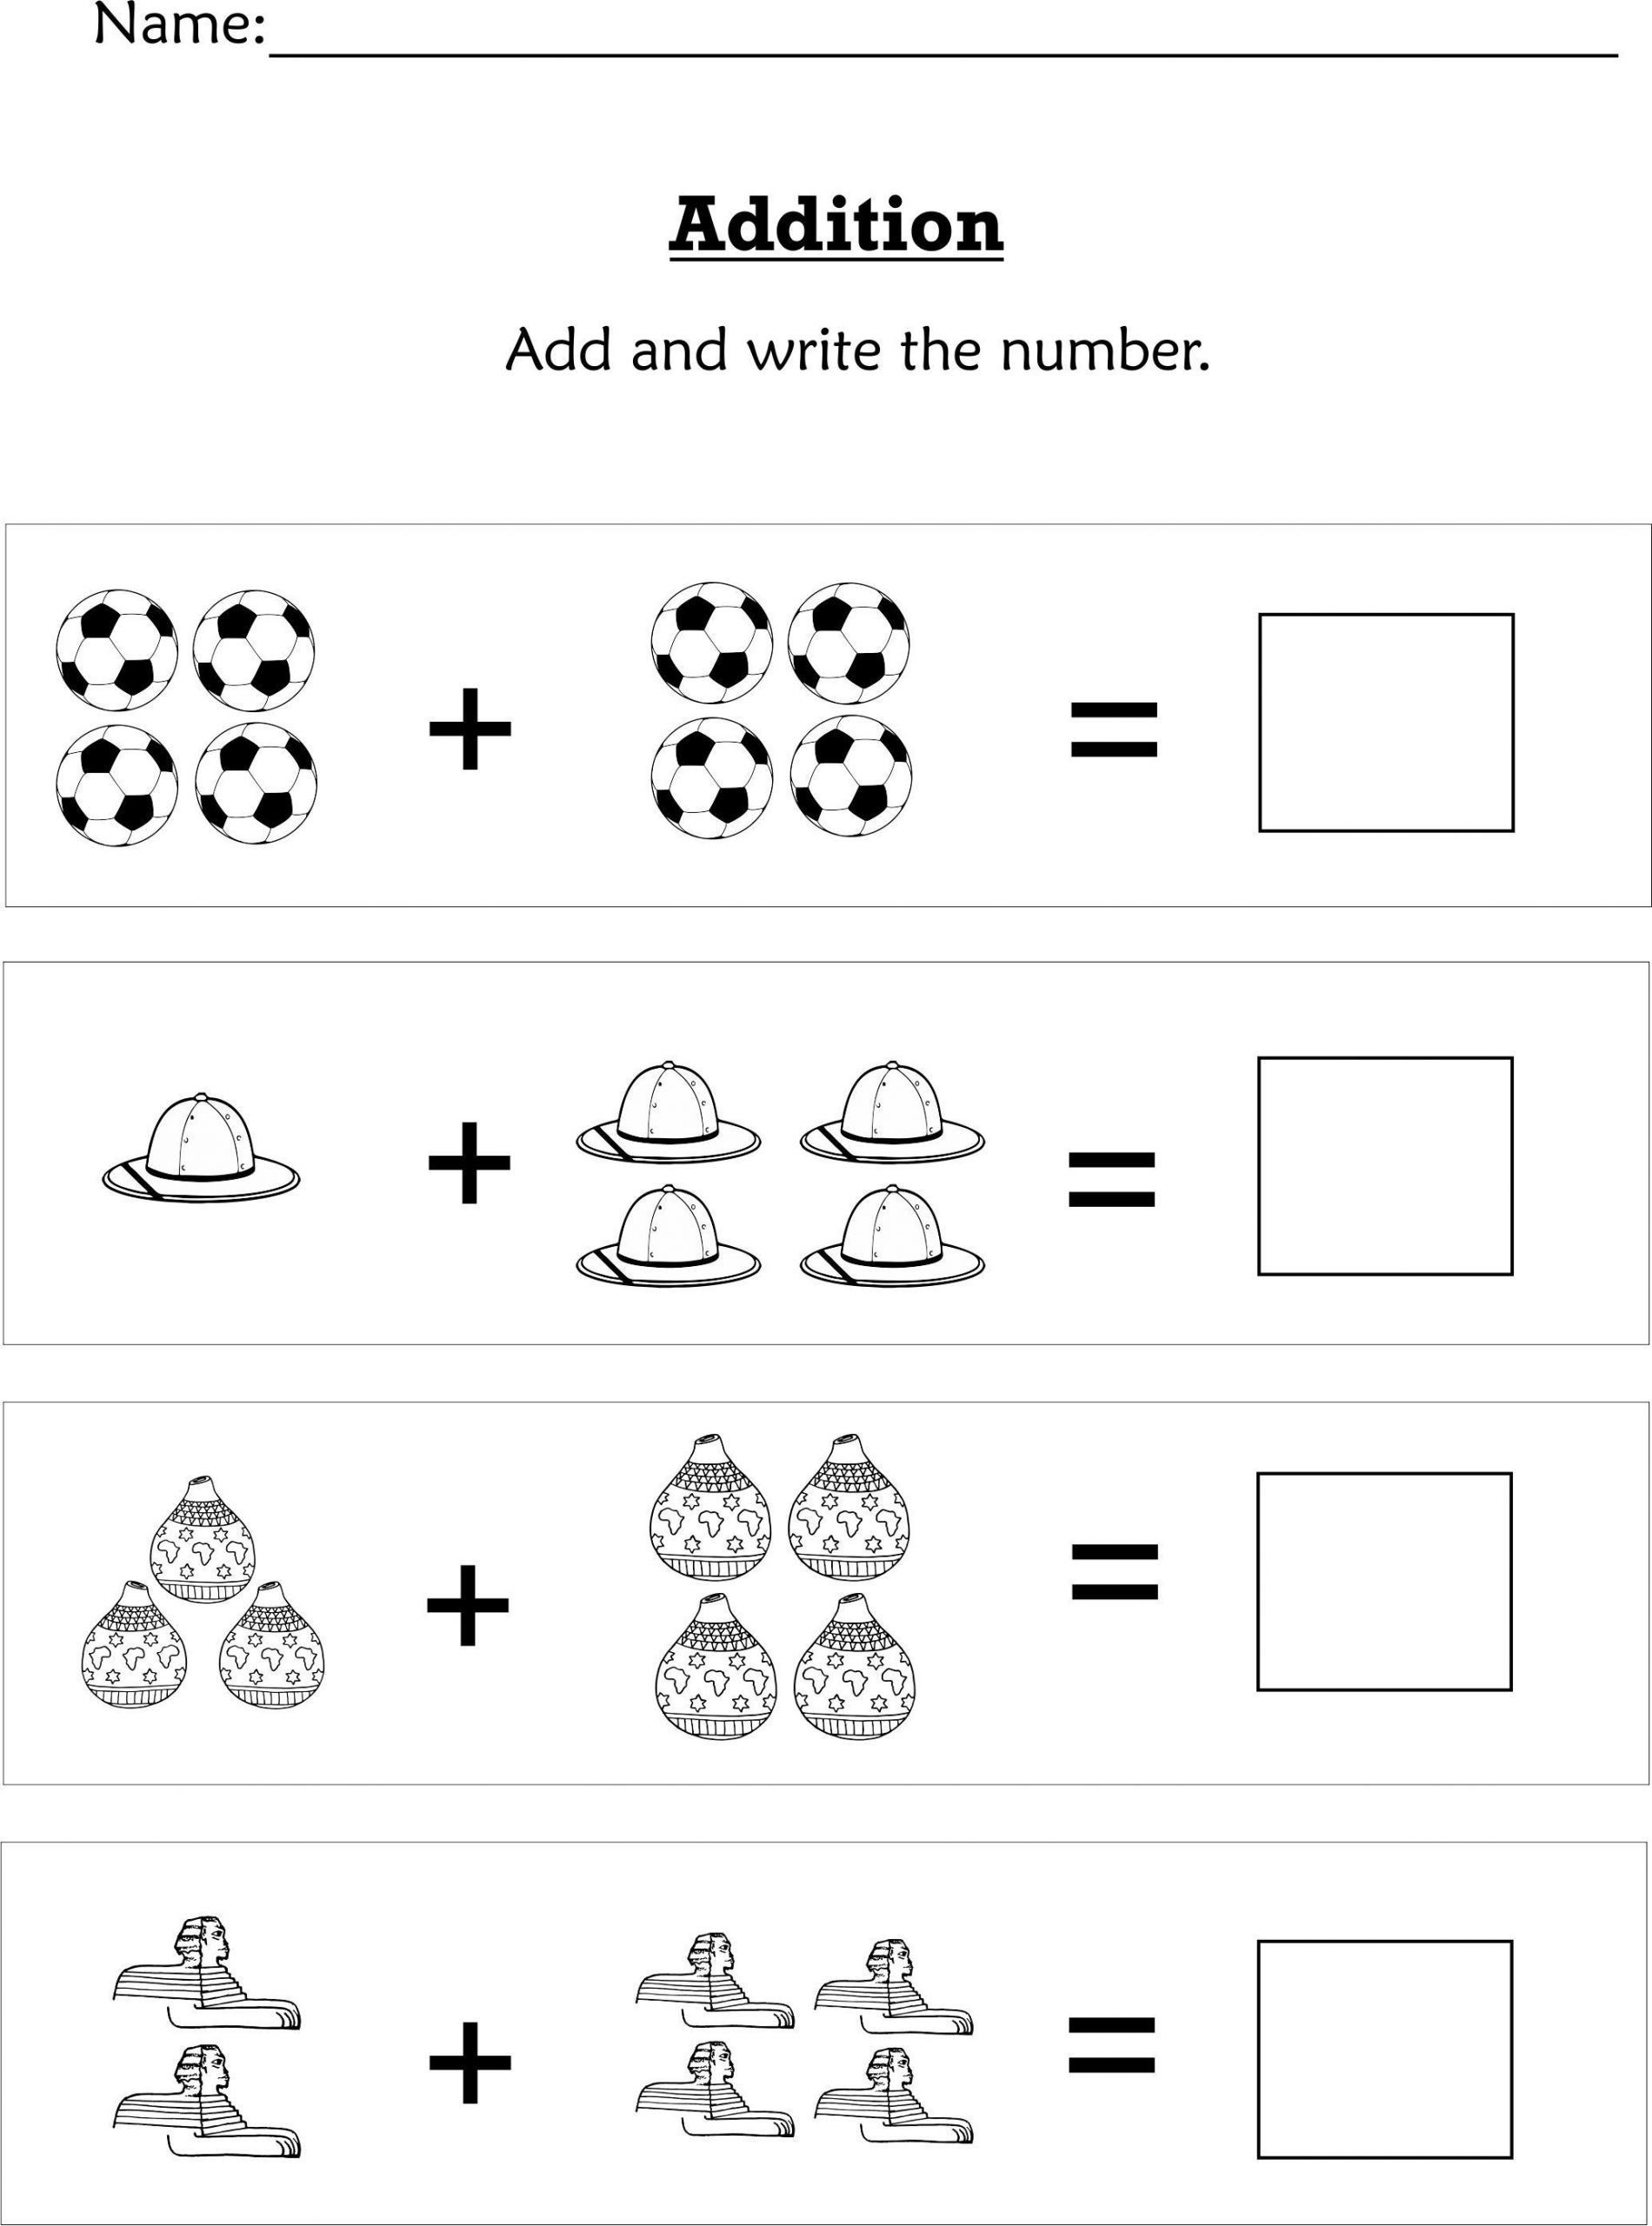 Free Printable Abeka Worksheets Year Three Worksheets Cbse Rocks Worksheets for Class 4